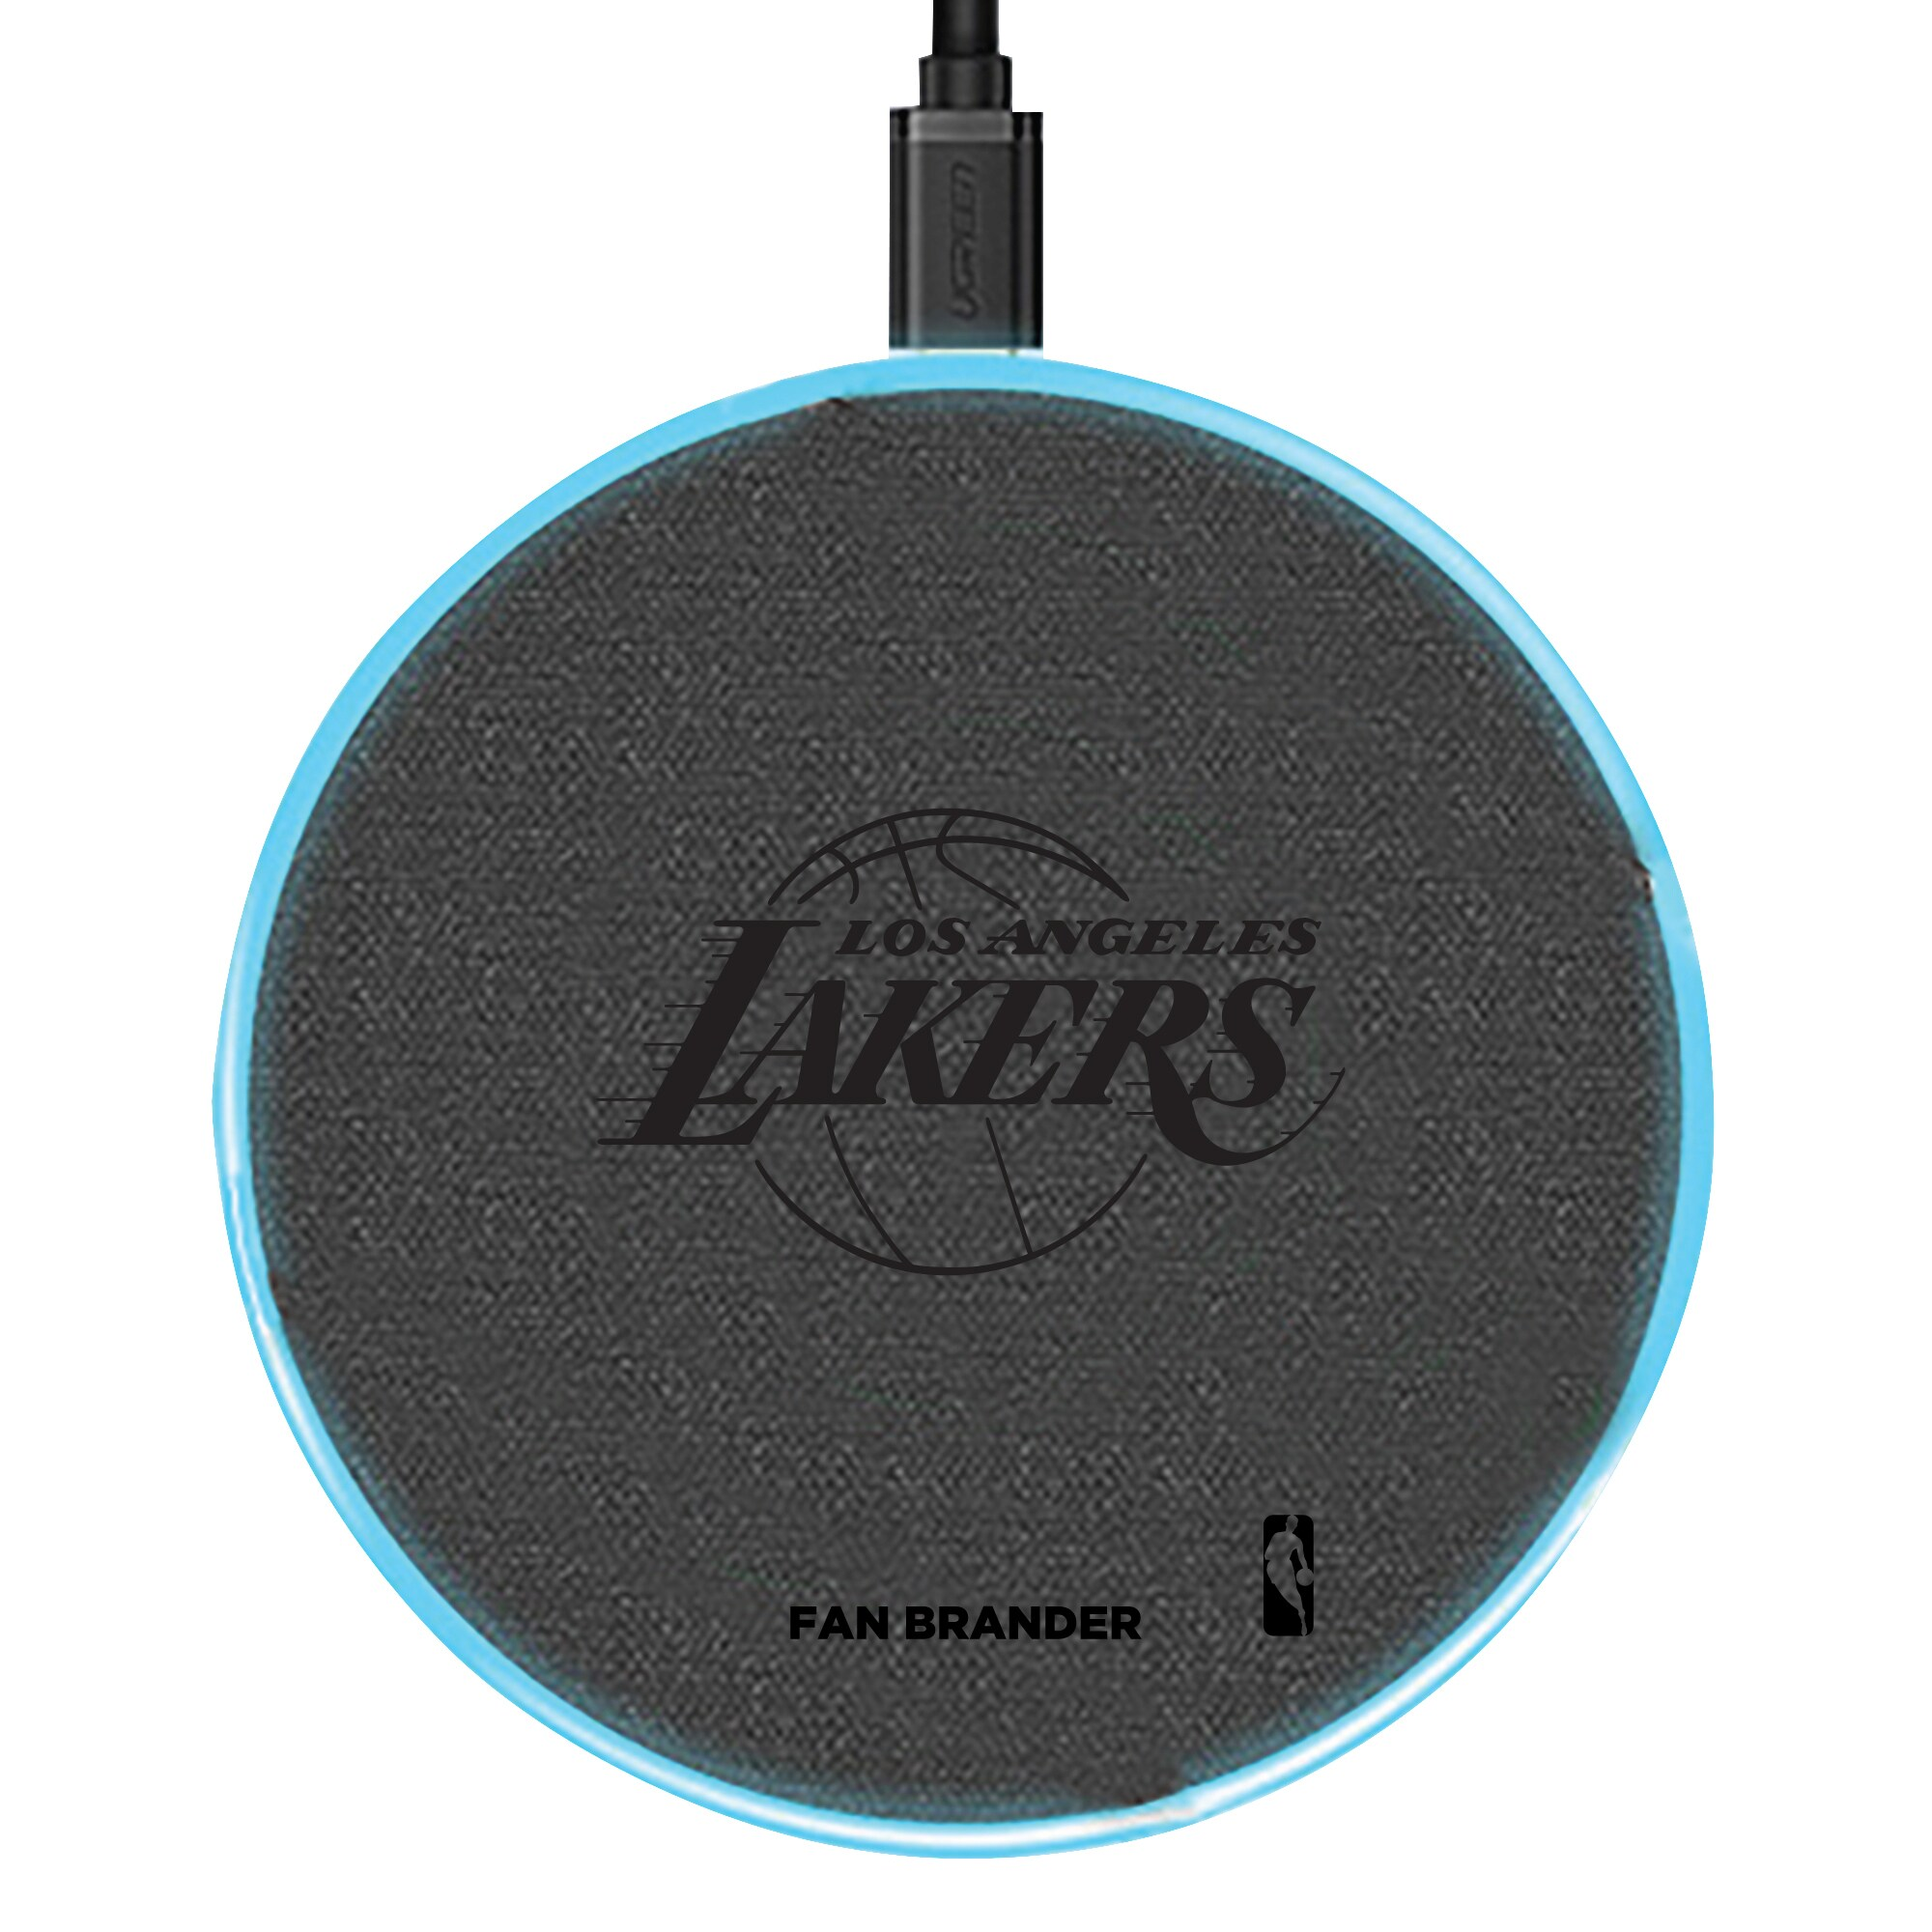 Los Angeles Lakers 15W Laser Etched Wireless Charging Base - Gray